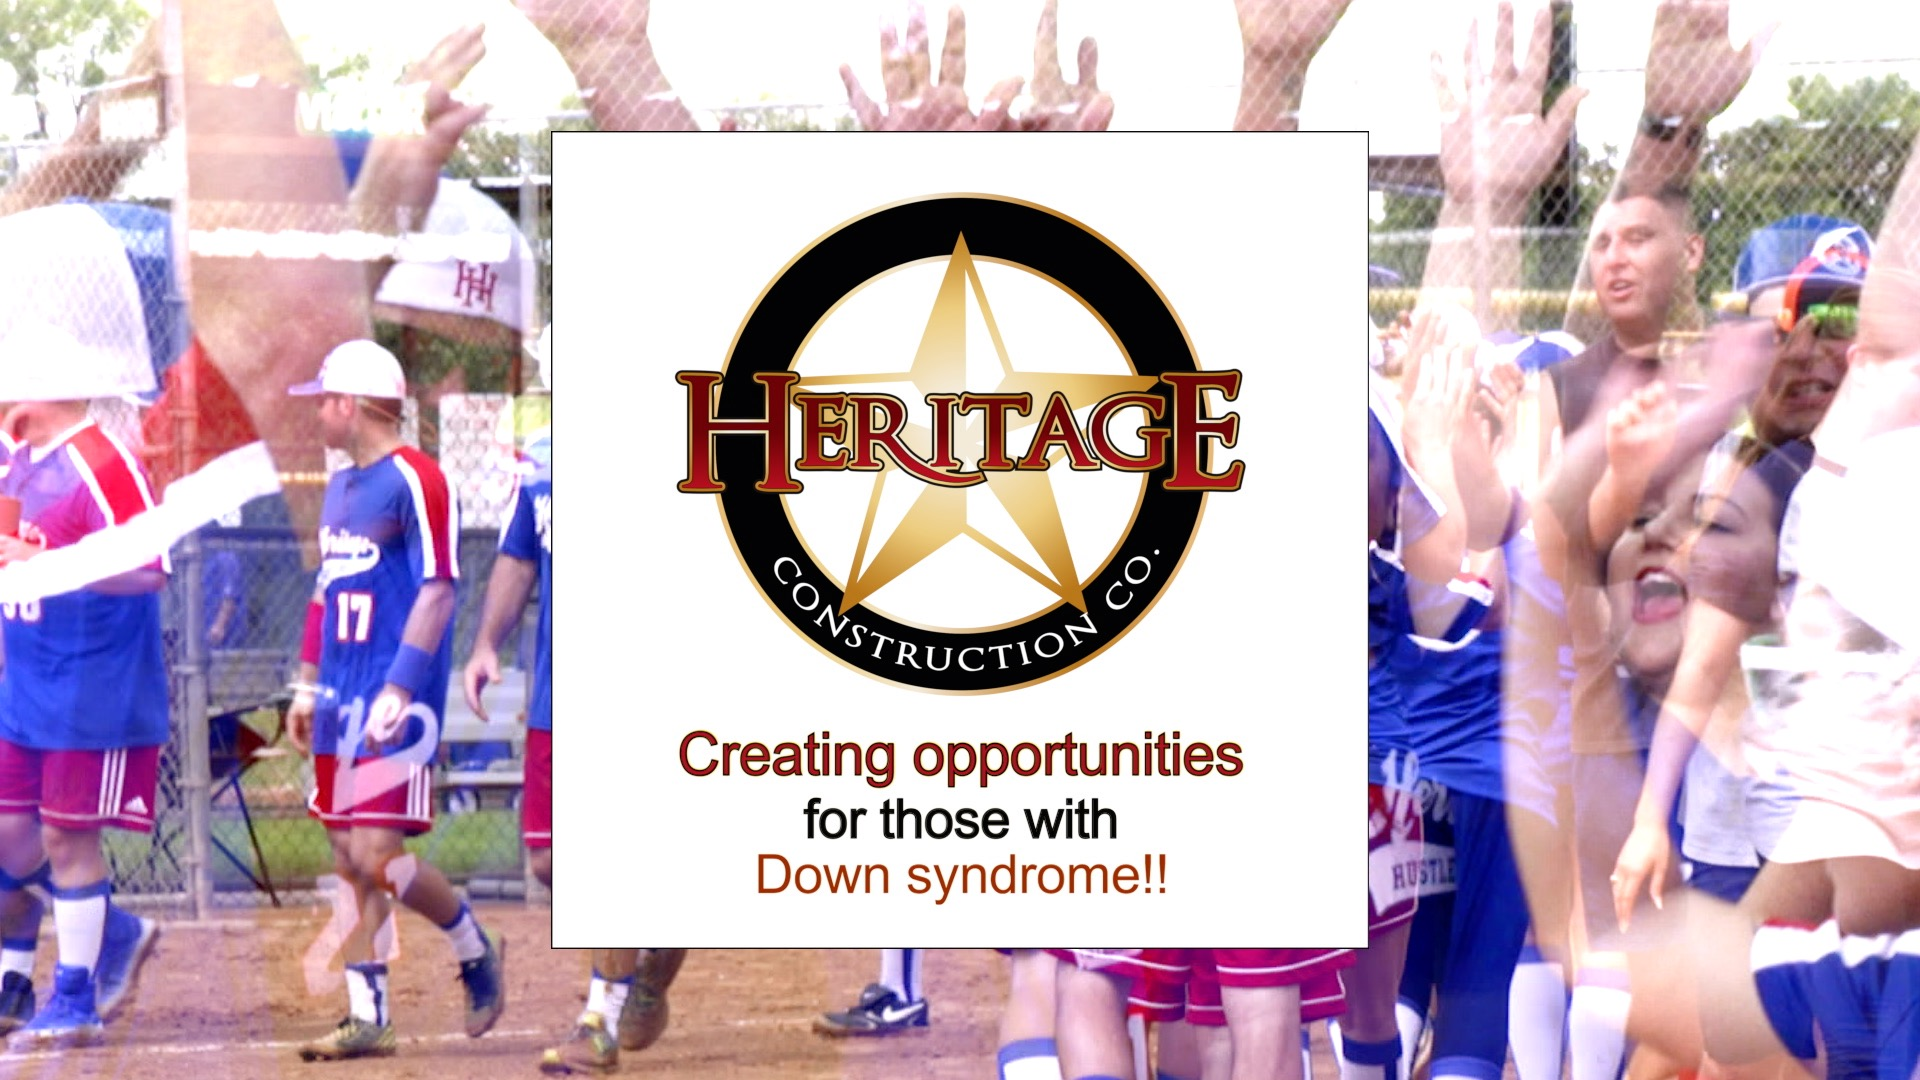 Heritage Construction Co. Down Syndrome Charity Kickball Tournament